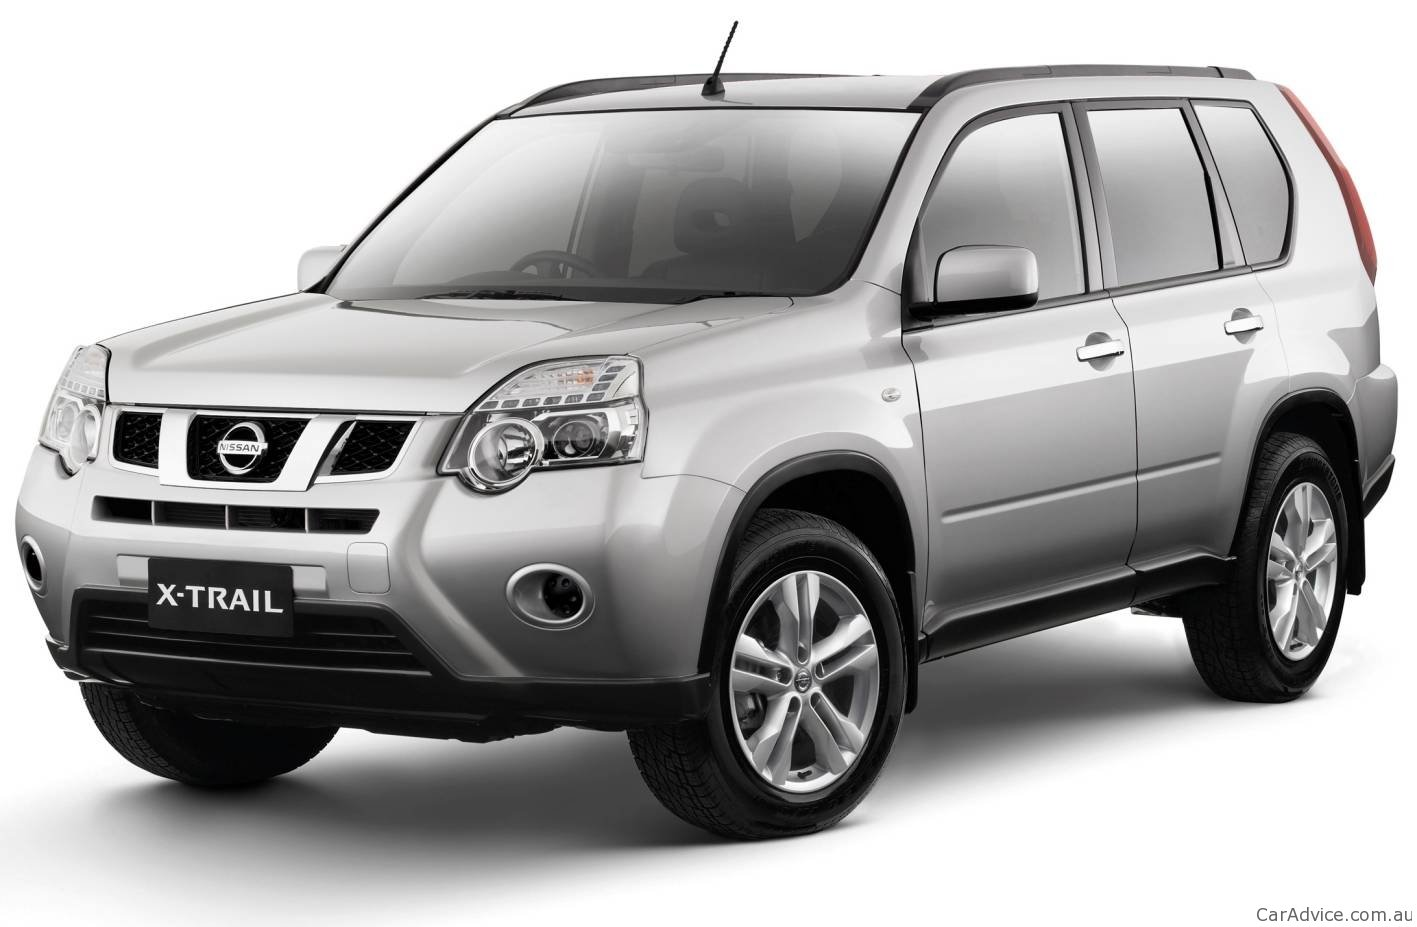 2011 nissan x trail 2wd launched in australia photos 1. Black Bedroom Furniture Sets. Home Design Ideas